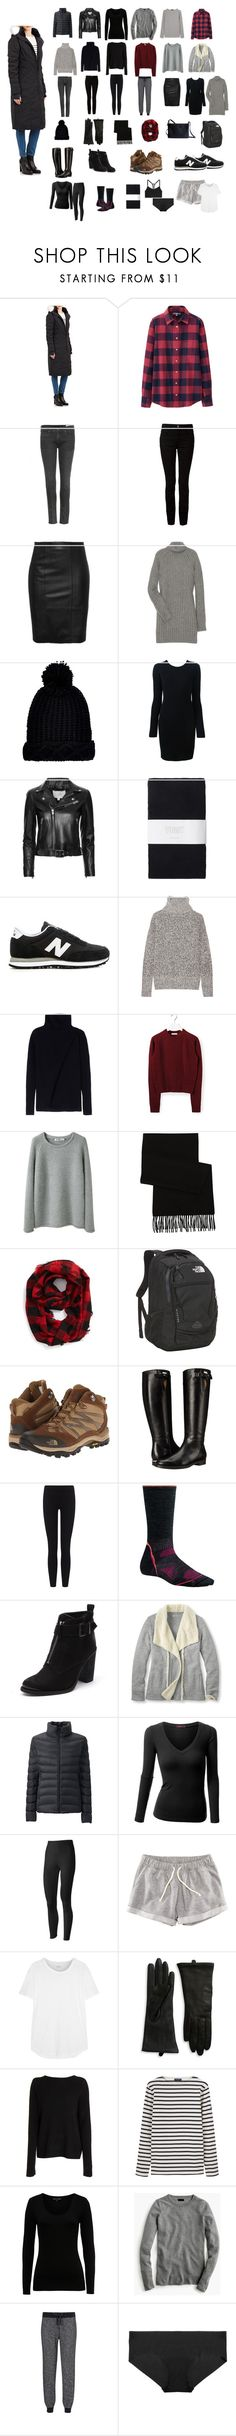 """Europe Winter Packing List"" by thecchange ❤ liked on Polyvore featuring Canada Goose, Uniqlo, rag & bone, Alexander Wang, Stand, Michael Kors, River Island, IRO, Toast and New Balance"